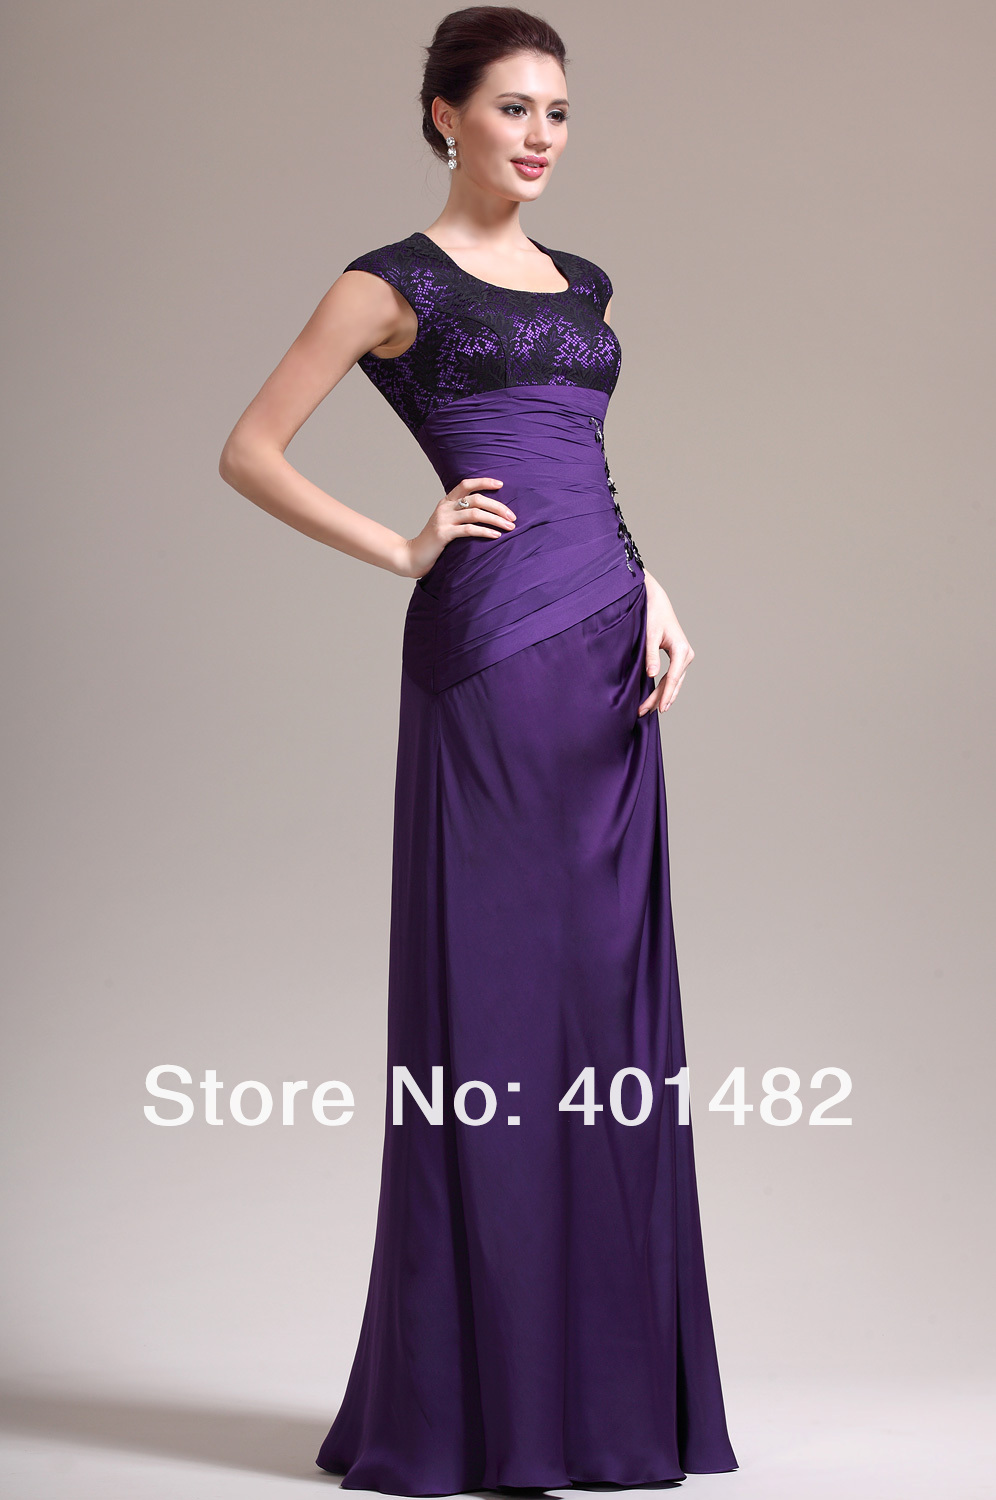 Women Formal Dresses New Adorable Cap Sleeves Purple Mother Bride - Elaine Fashion --- 100% Satisfaction store